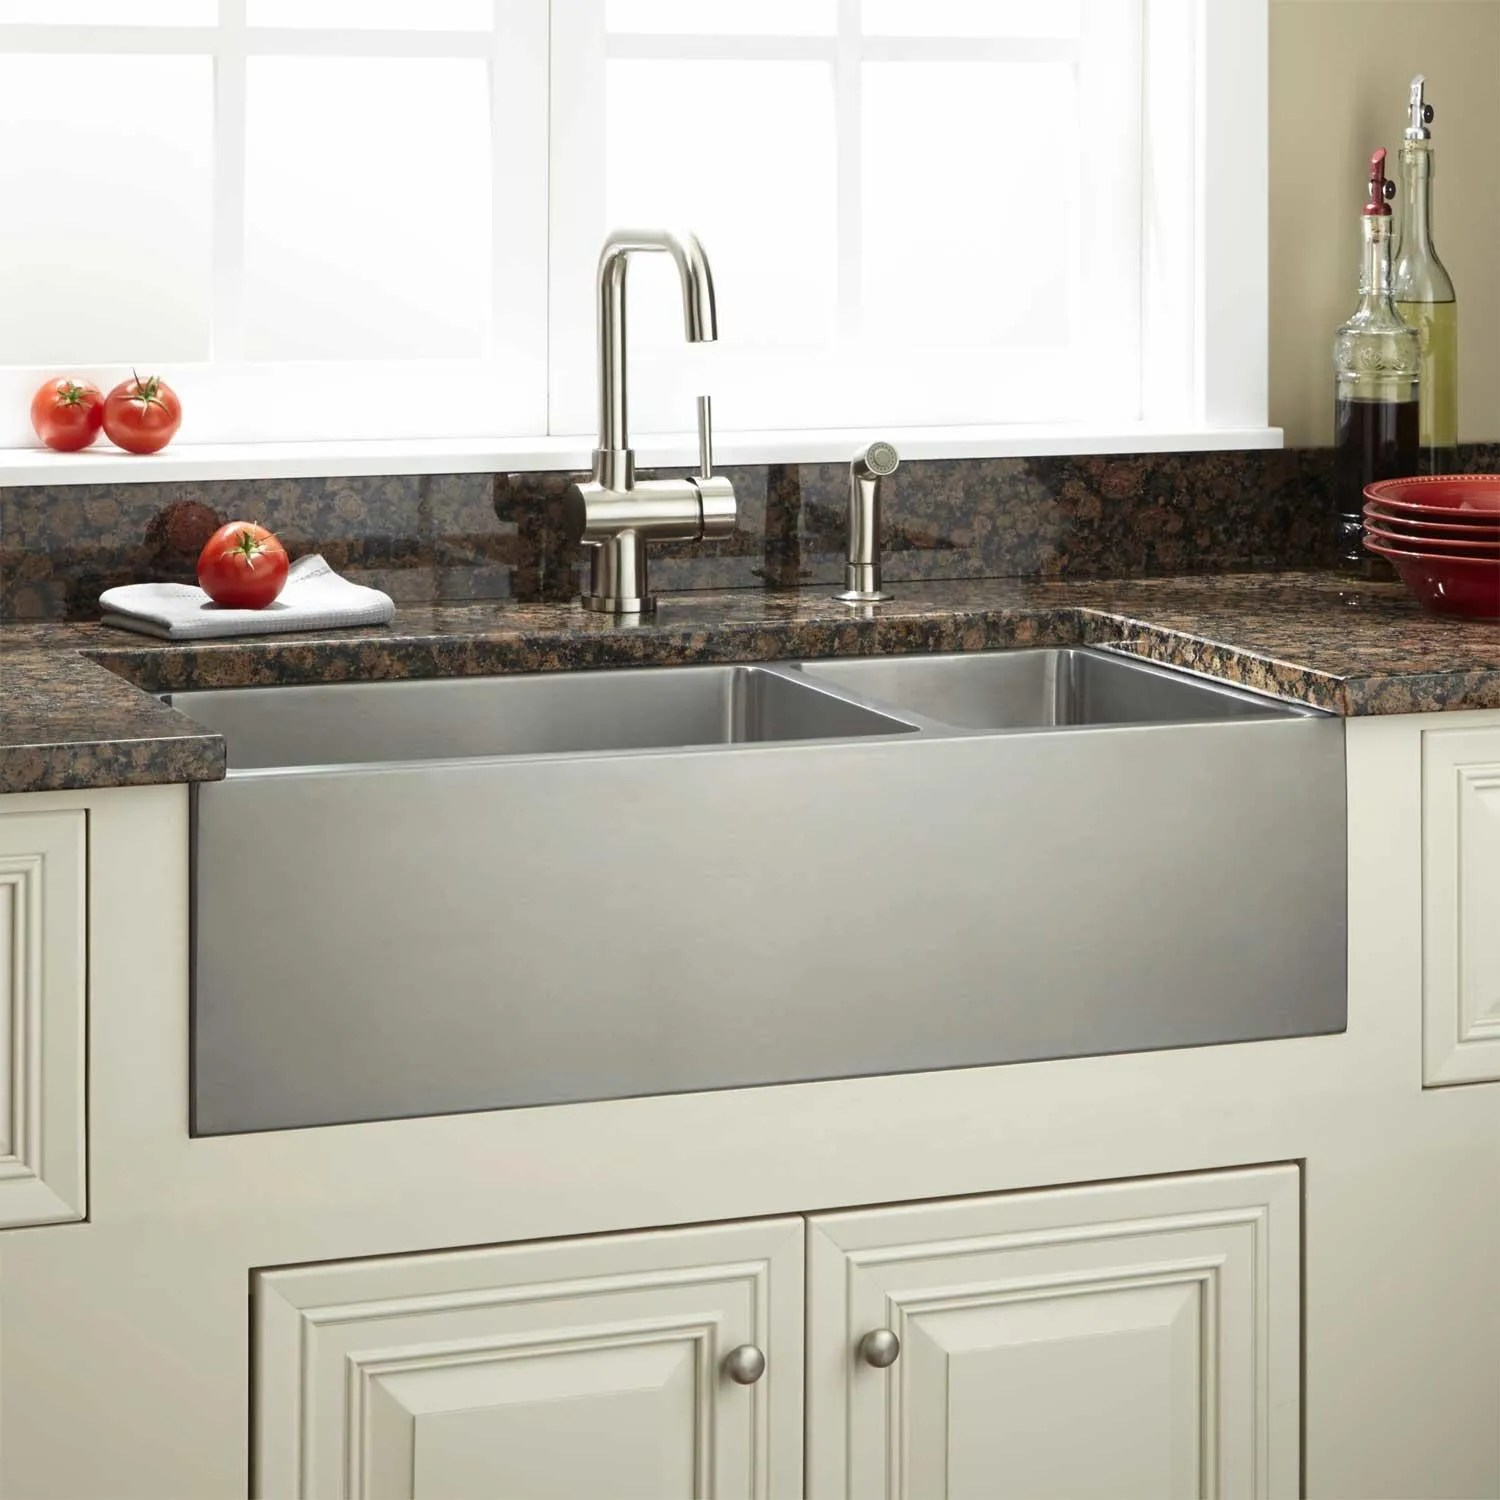 36 Optimum 7030 Offset Double Bowl Stainless Steel